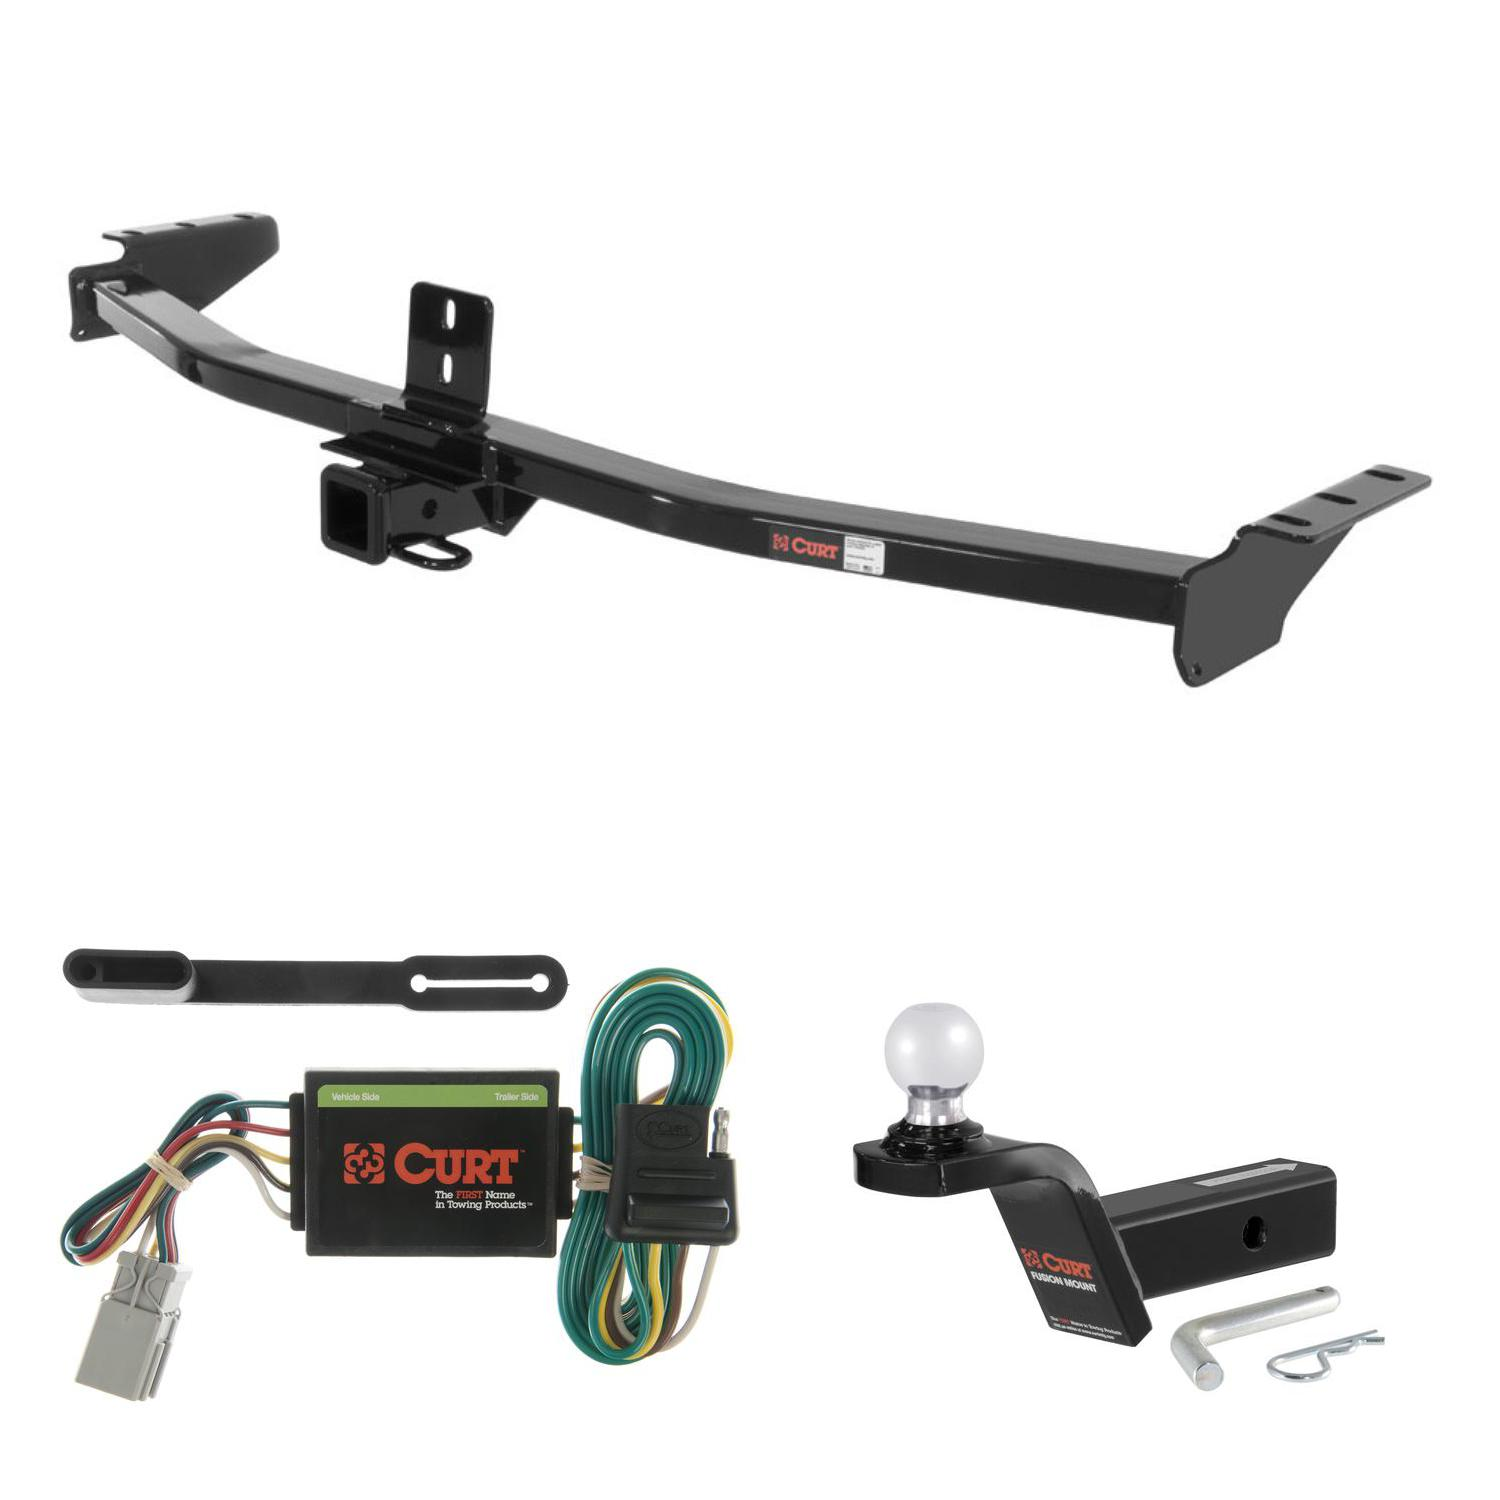 hight resolution of curt trailer hitch wiring 2 ball mount w 2 rise for acura mdx honda pilot